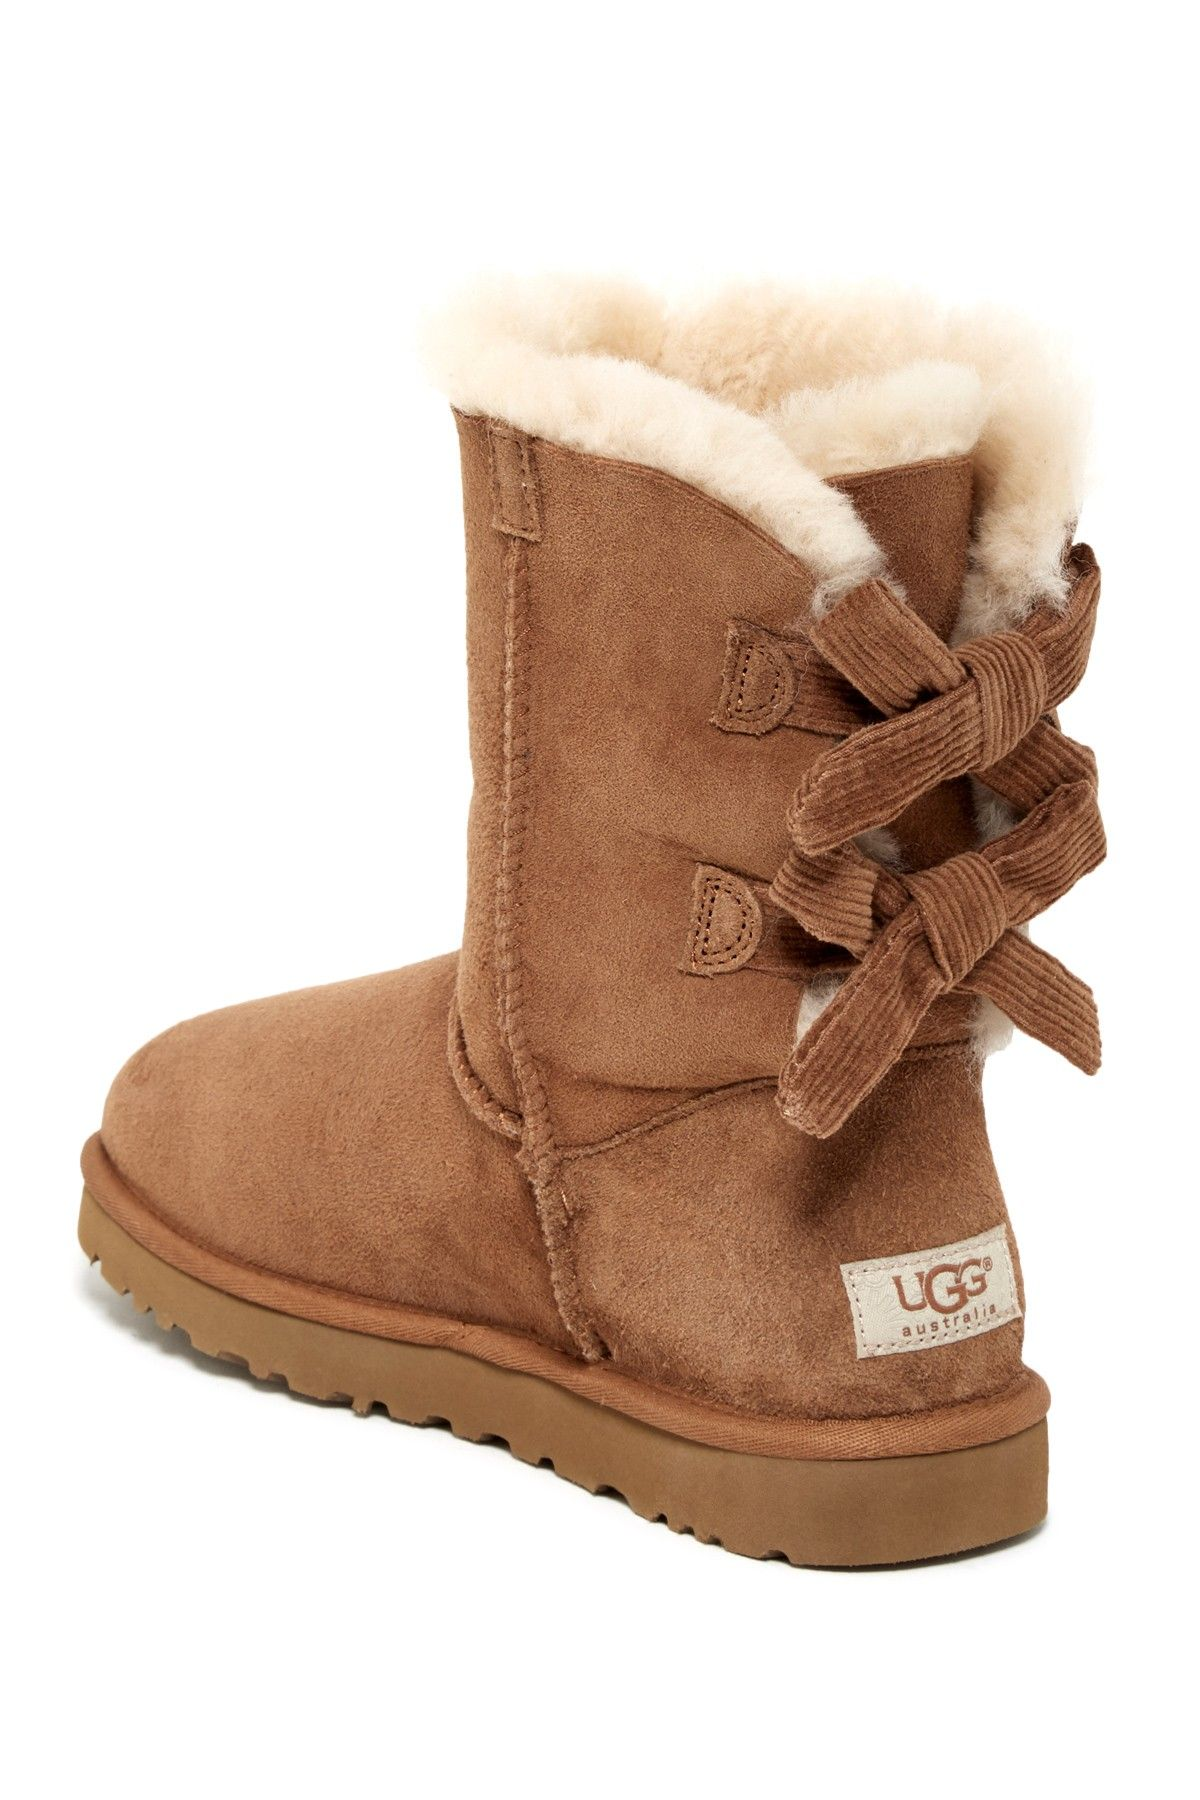 Ugg Australia Baily Bow Corduroy Genuine Shearling Fur Boot Nordstrom Rack Sponsored By